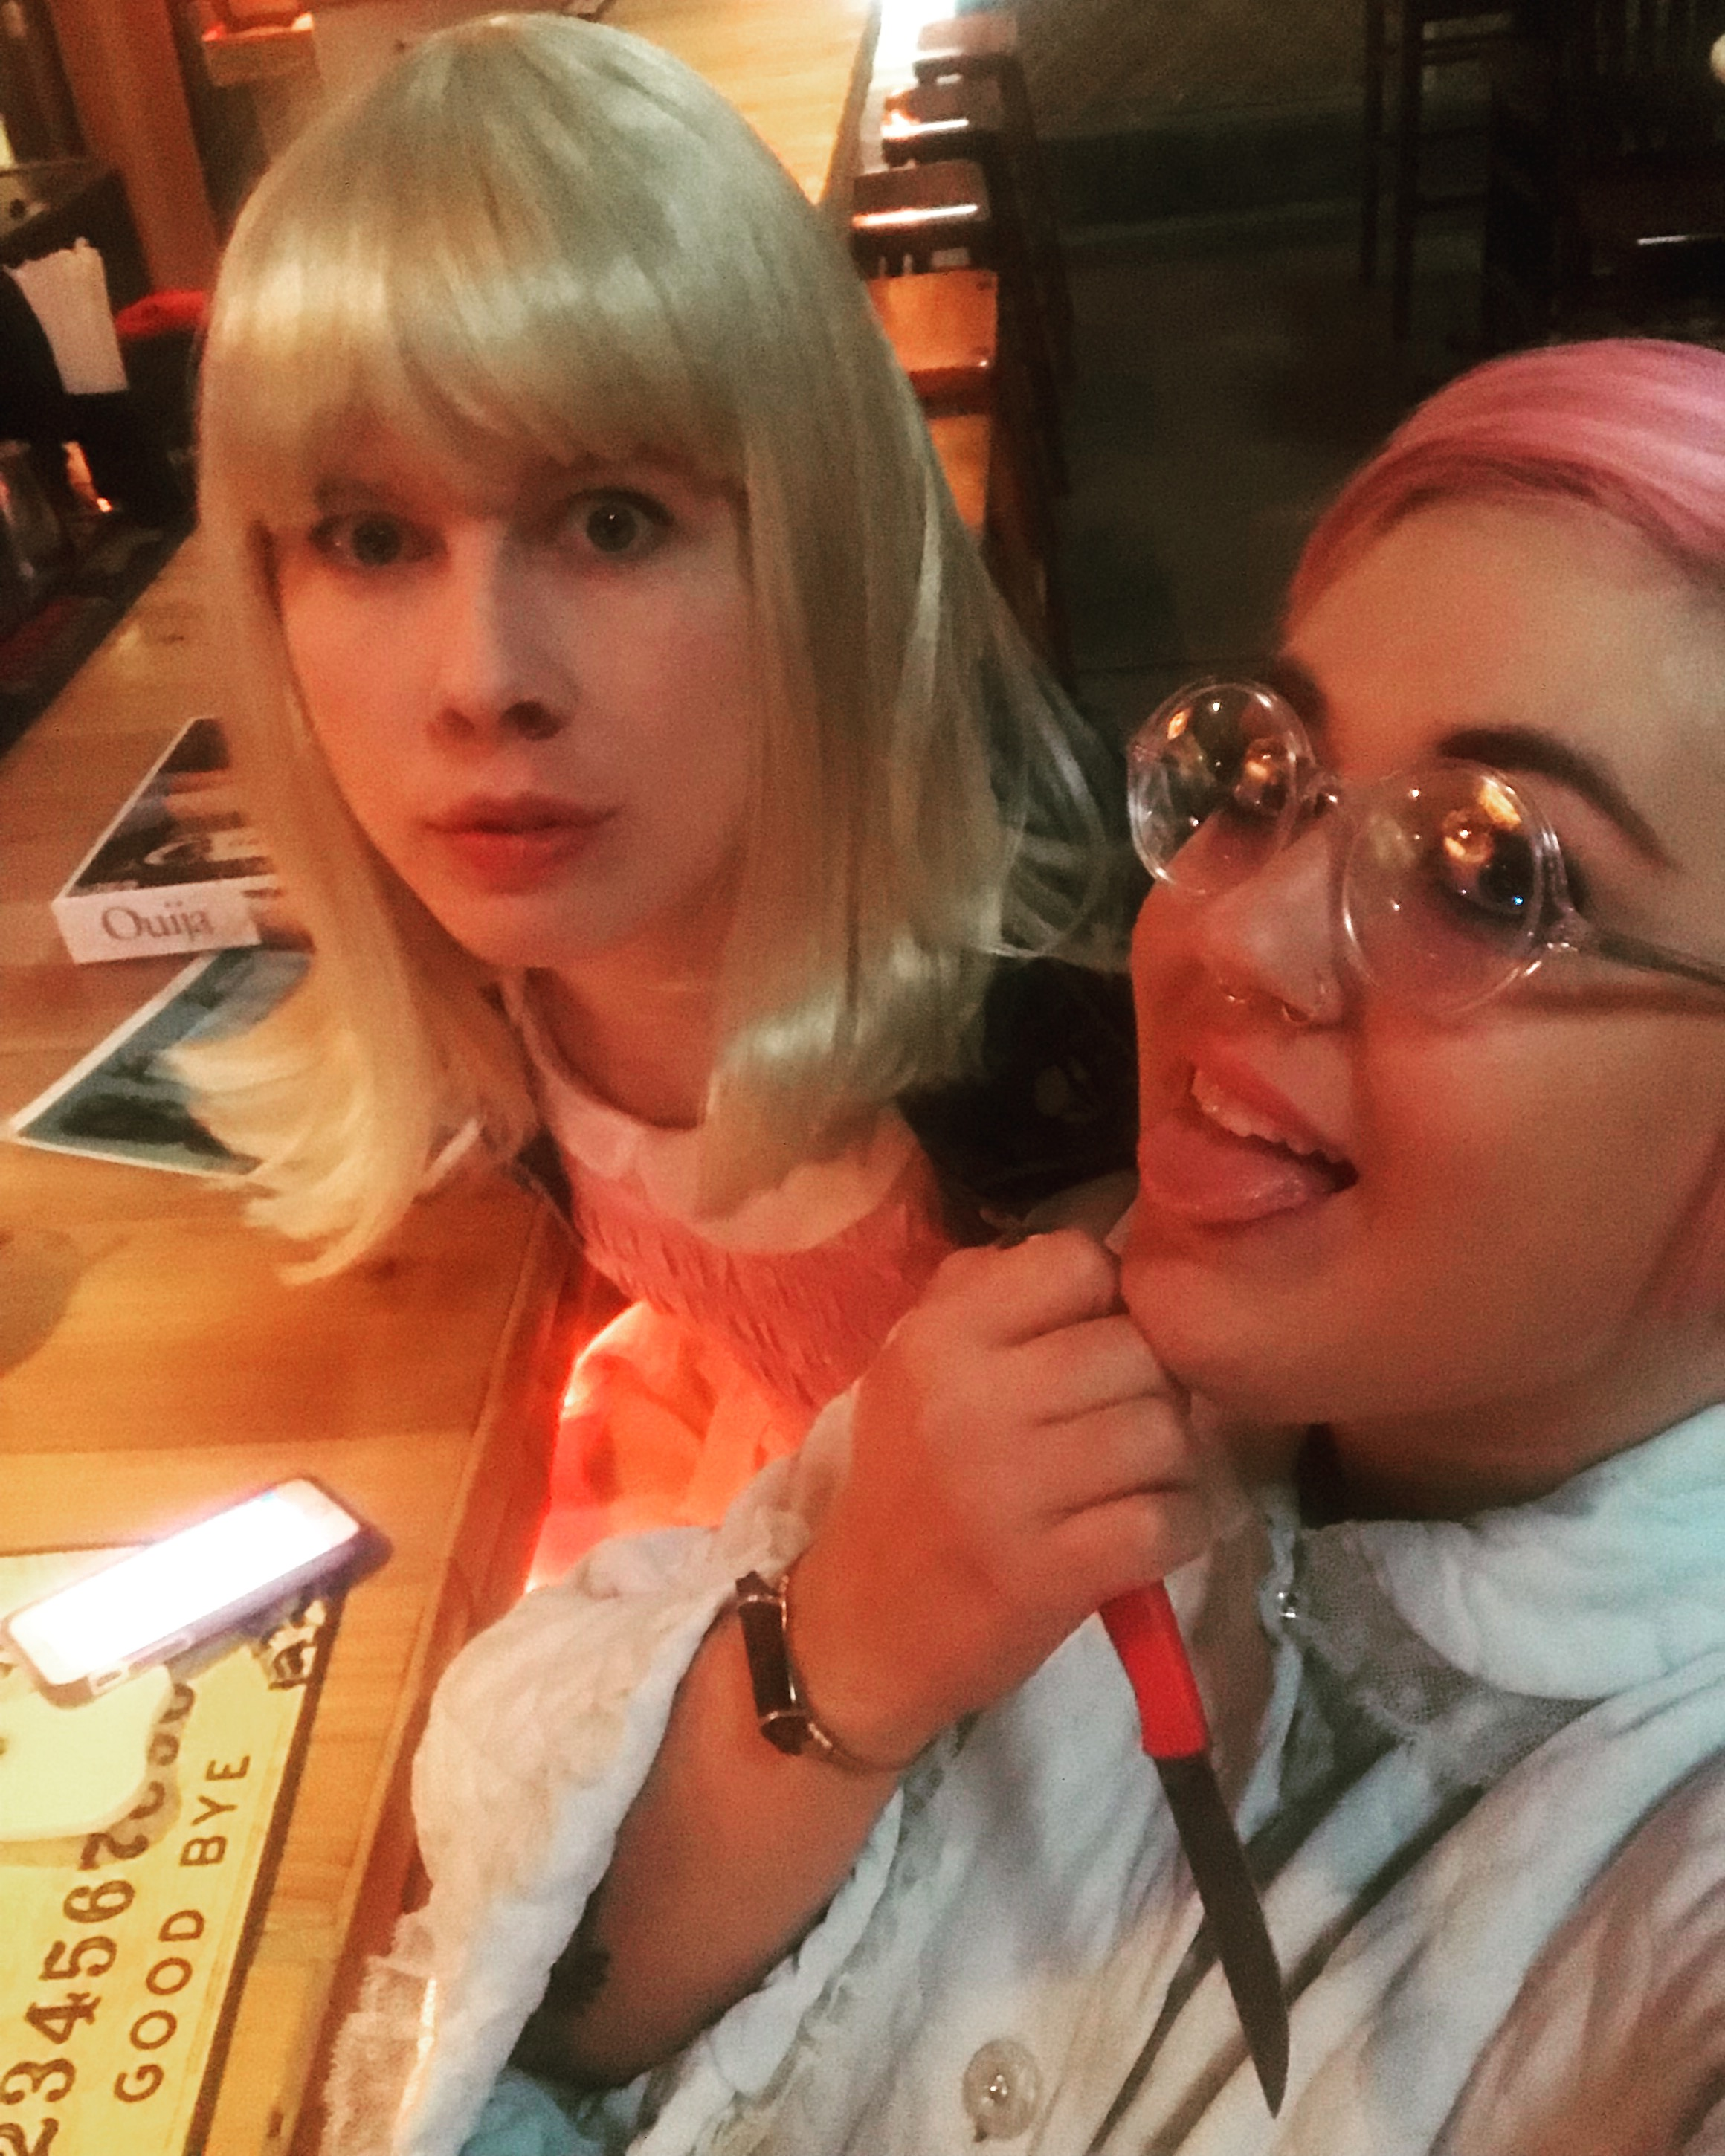 Eleven and Rosemary out on the town